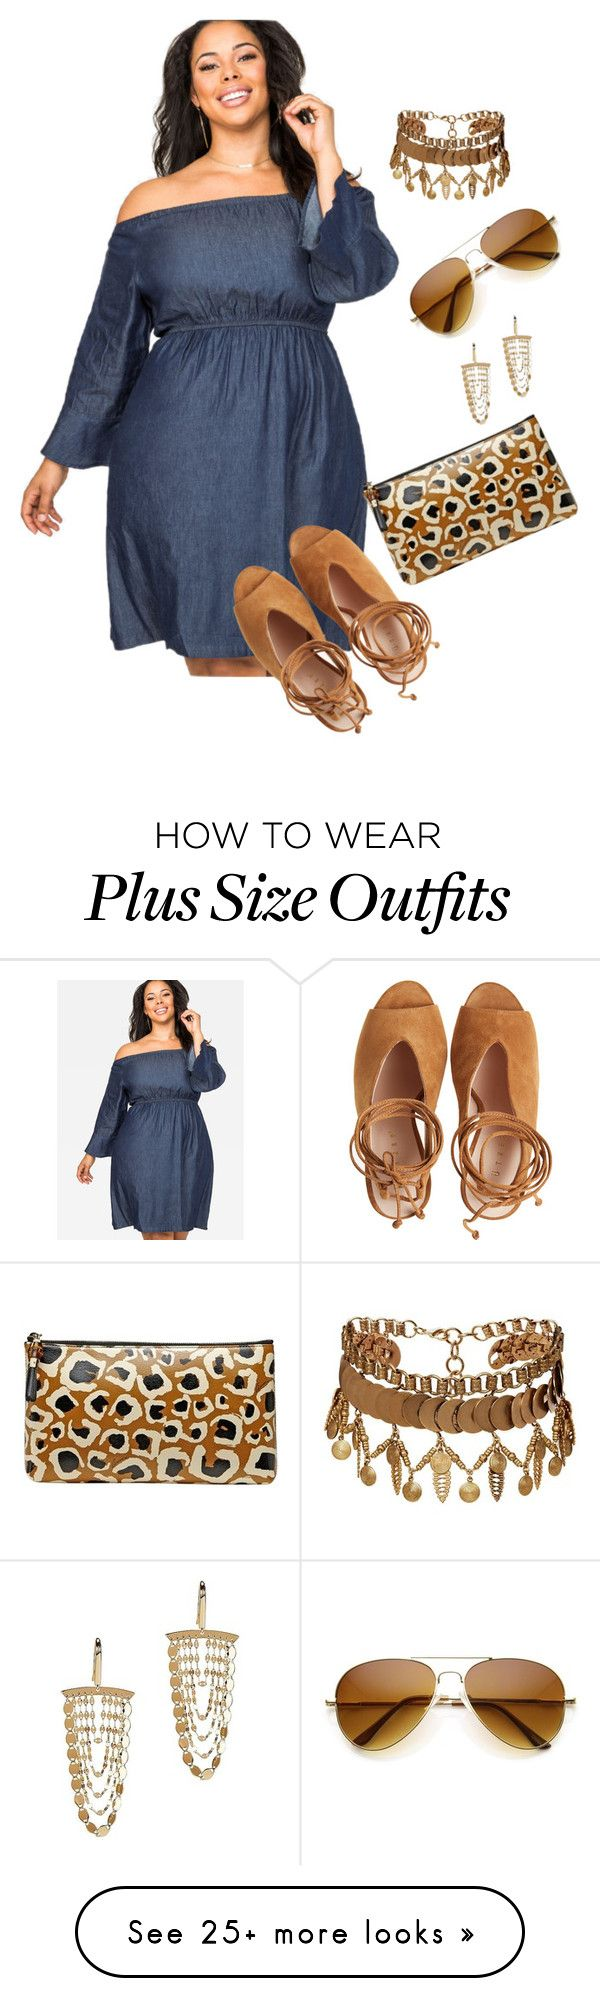 """My plus size denim style/2 simple chic"" by xtrak on Polyvore featuring Ashley Stewart, Elizabeth Cole, Gucci and Lana Jewelry"